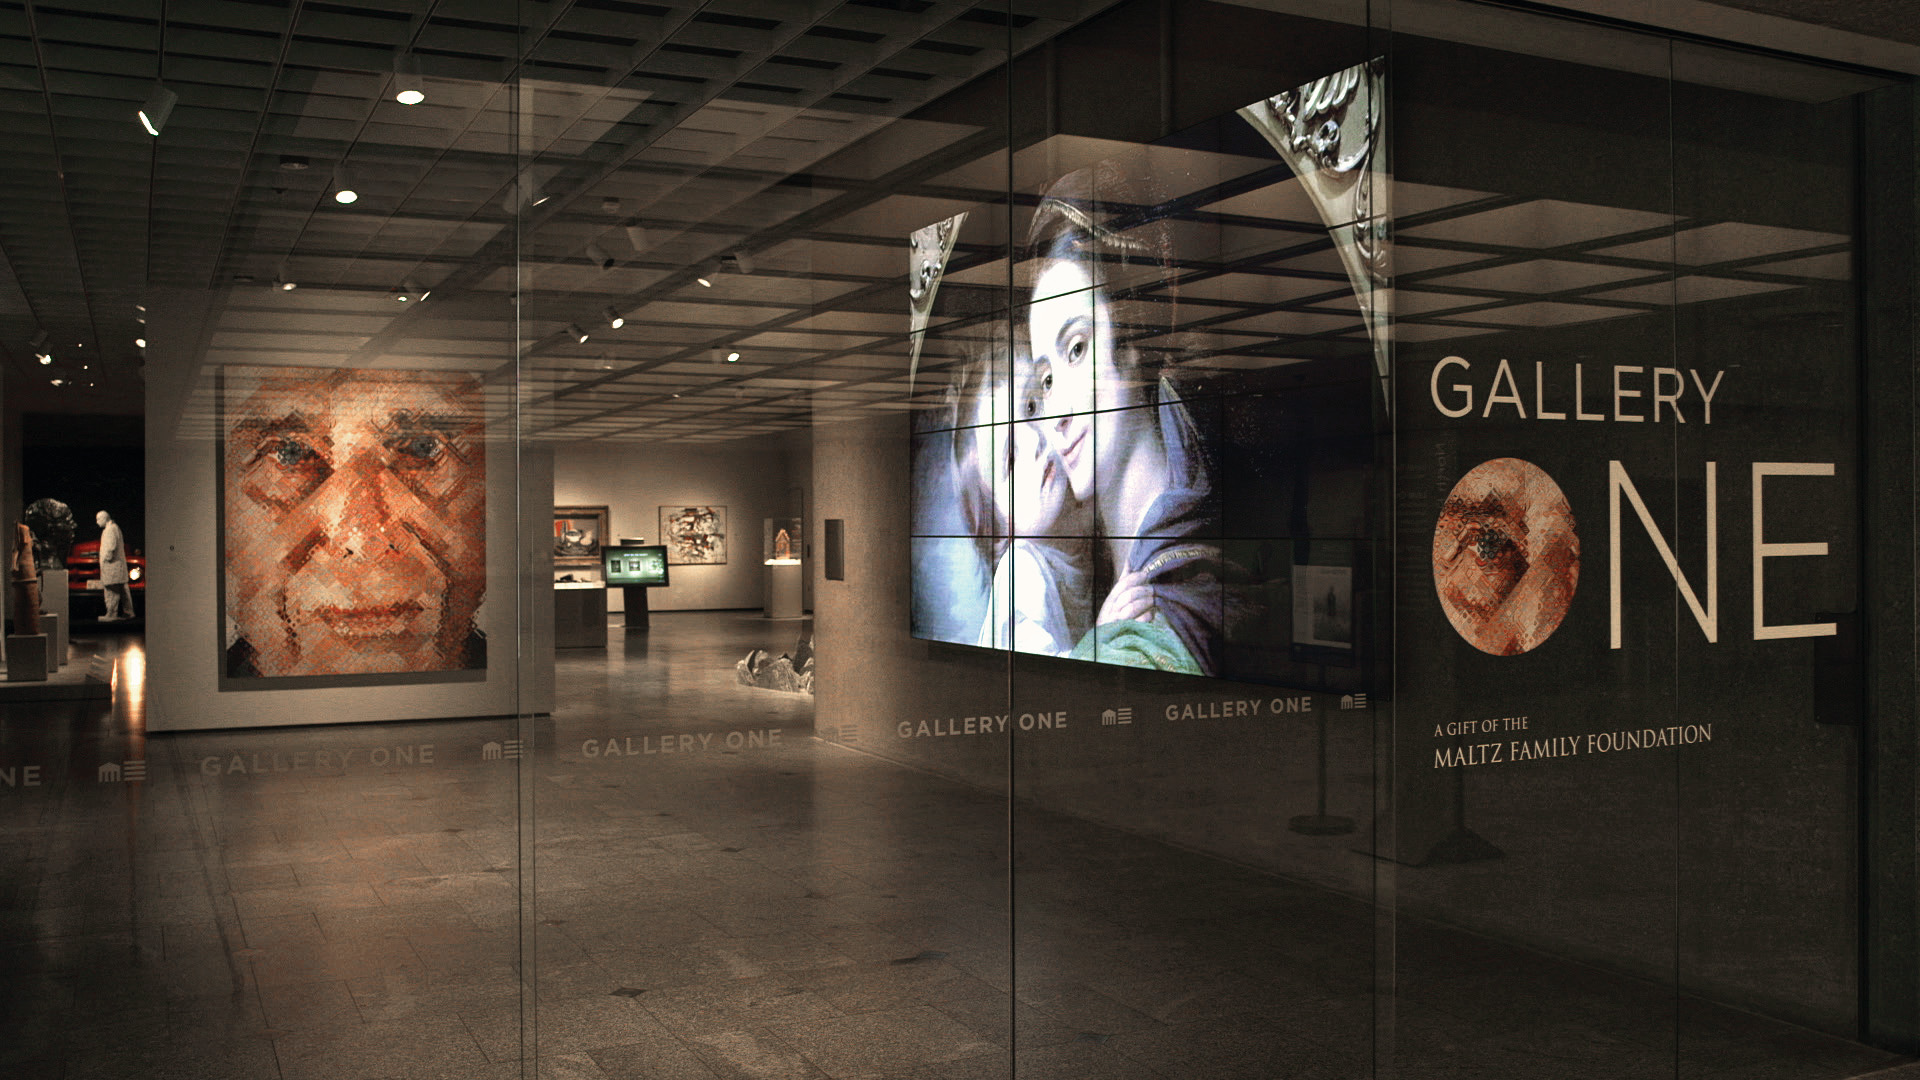 a view of gallery one from the main lobby of the cleveland museum of art  photo courtesy of